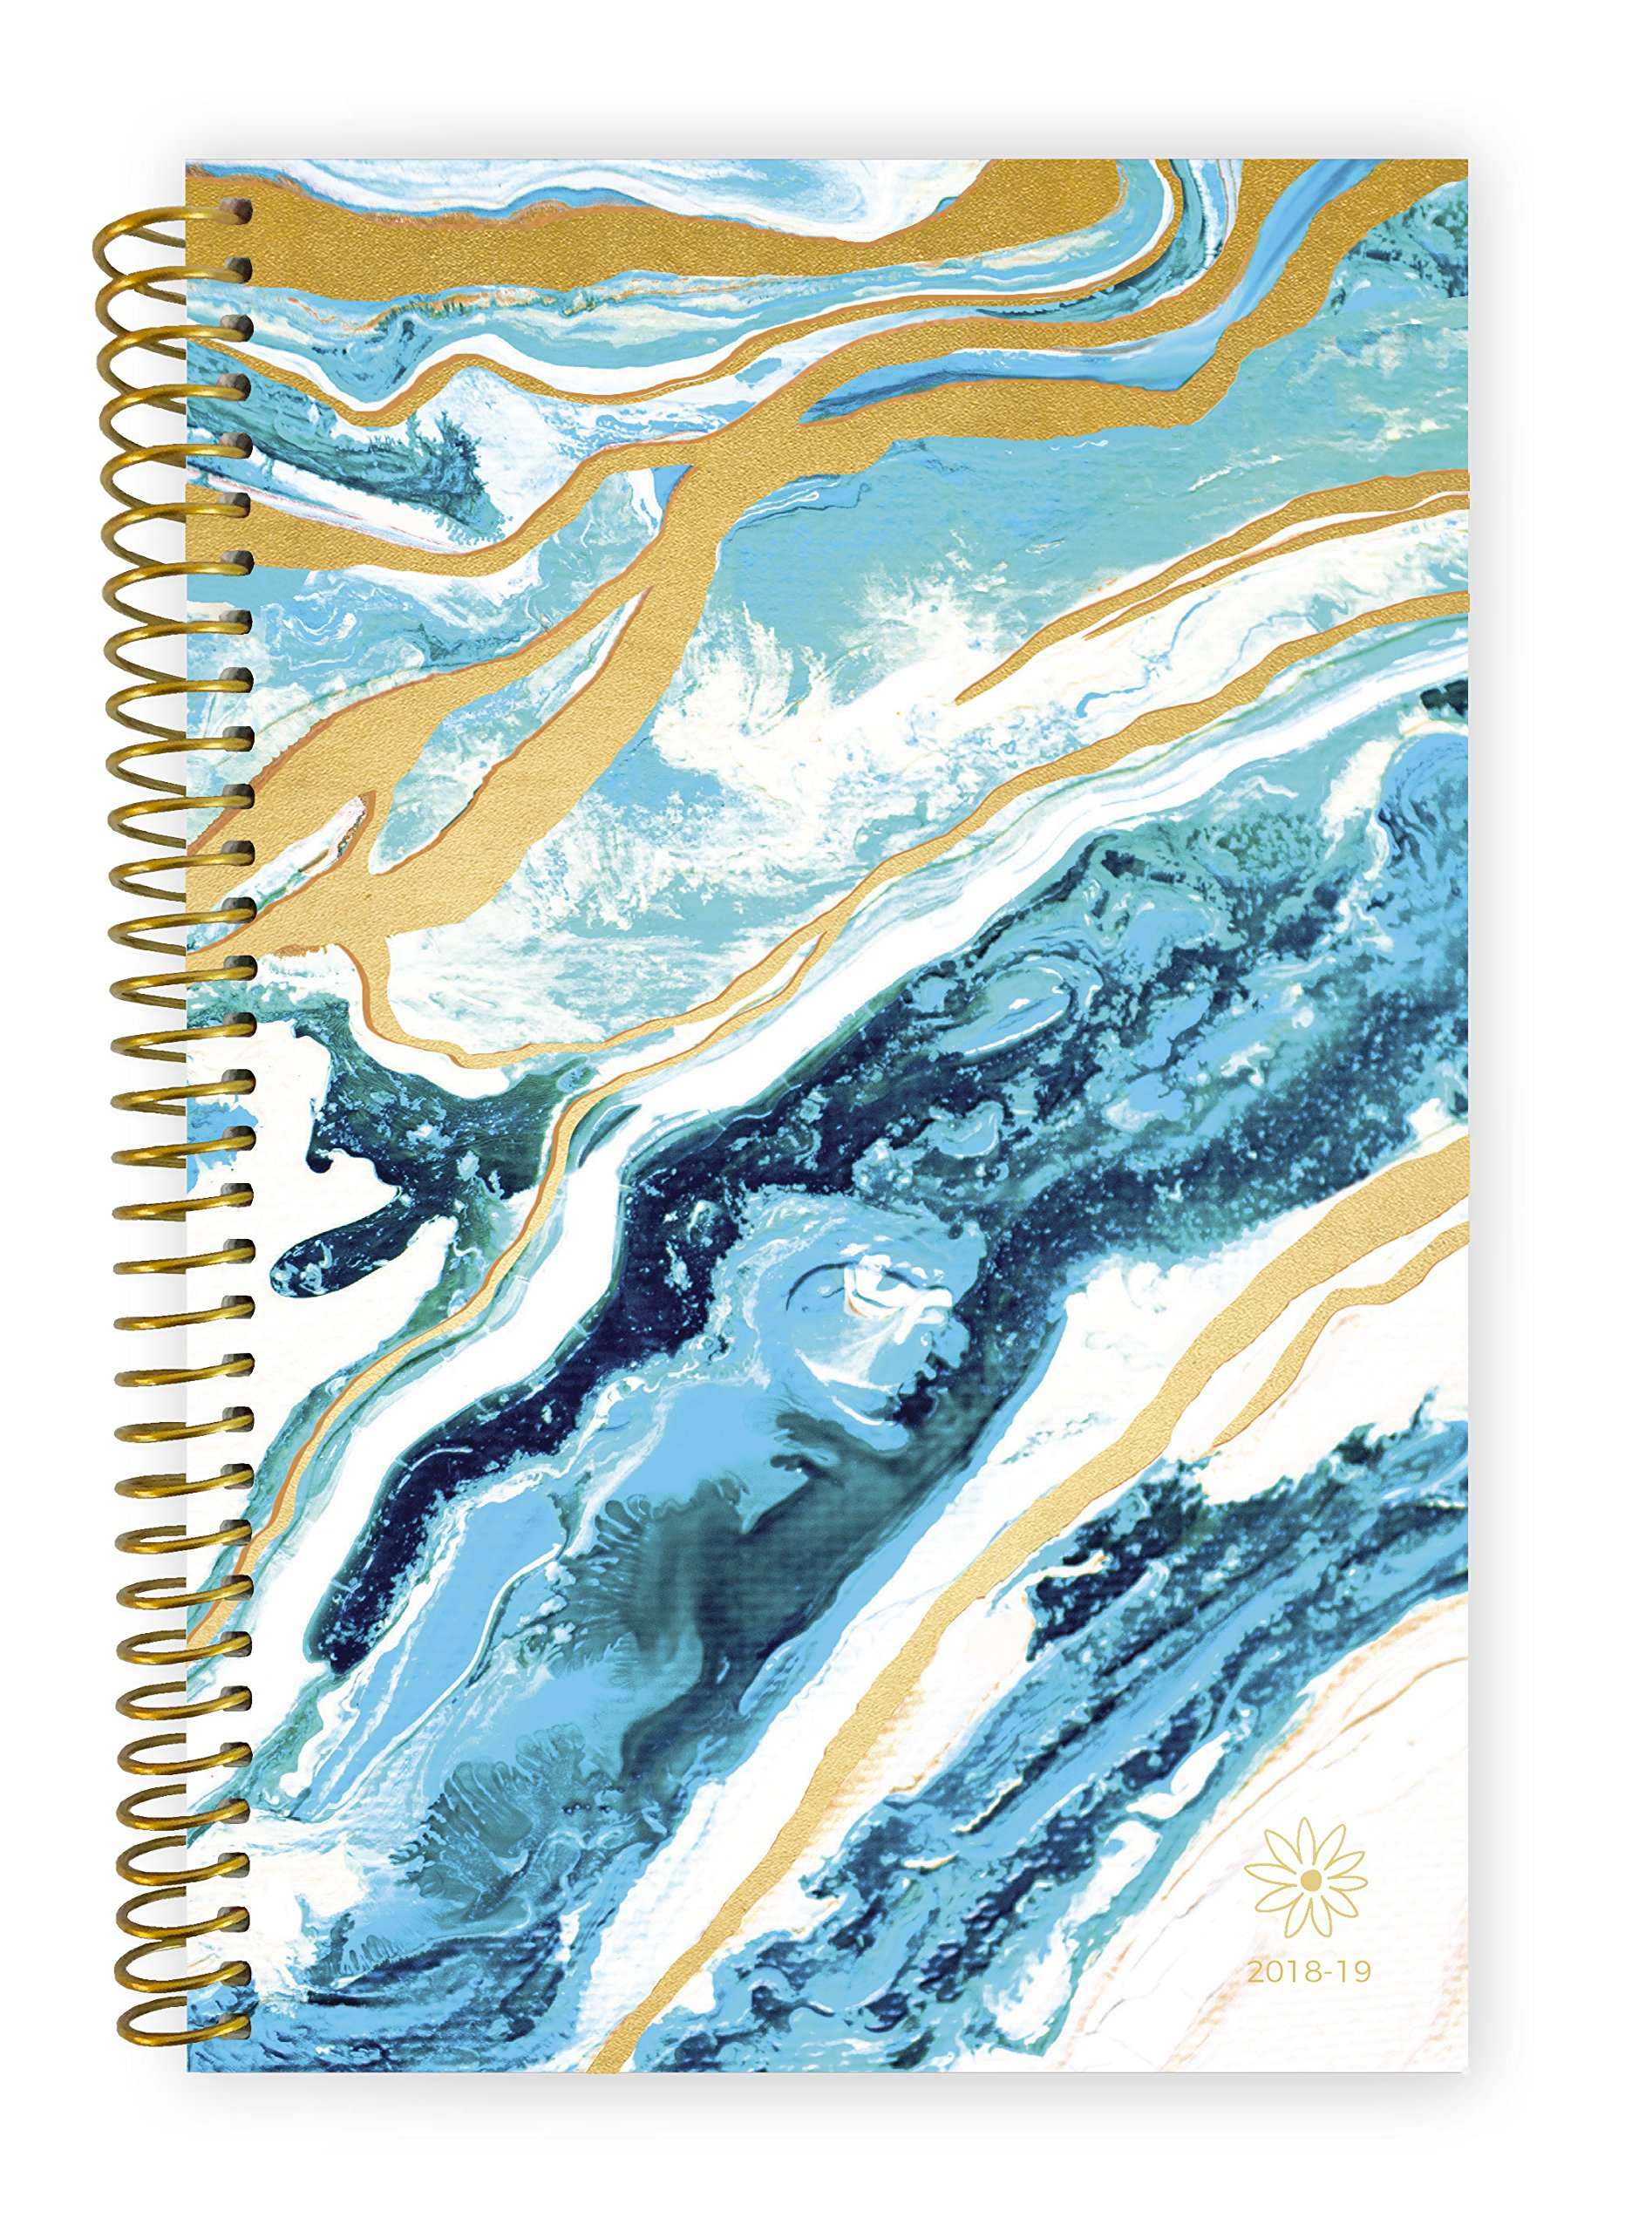 bloom daily planners 2018-2019 Academic Year Day Planner - Monthly and Weekly Calendar Book - Inspirational Dated Agenda Organizer - (August 2018 - July 2019) - 6'' x 8.25'' - Geode